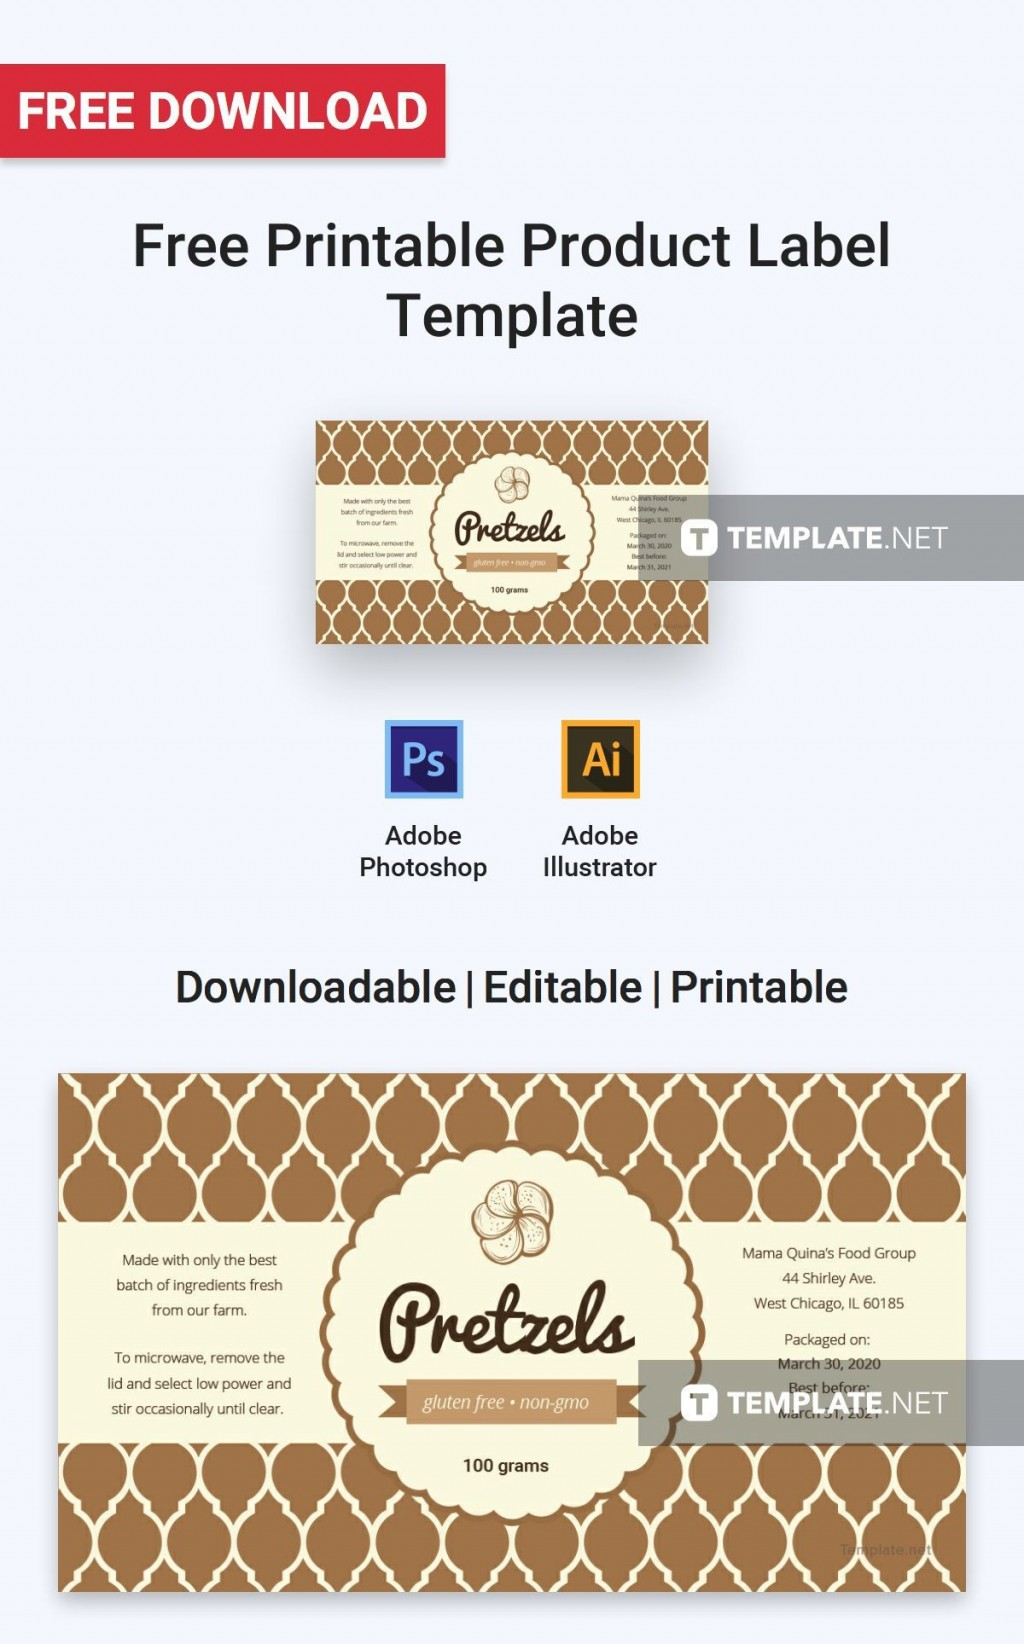 004 Sensational Microsoft Word Label Template Free Download Picture Large